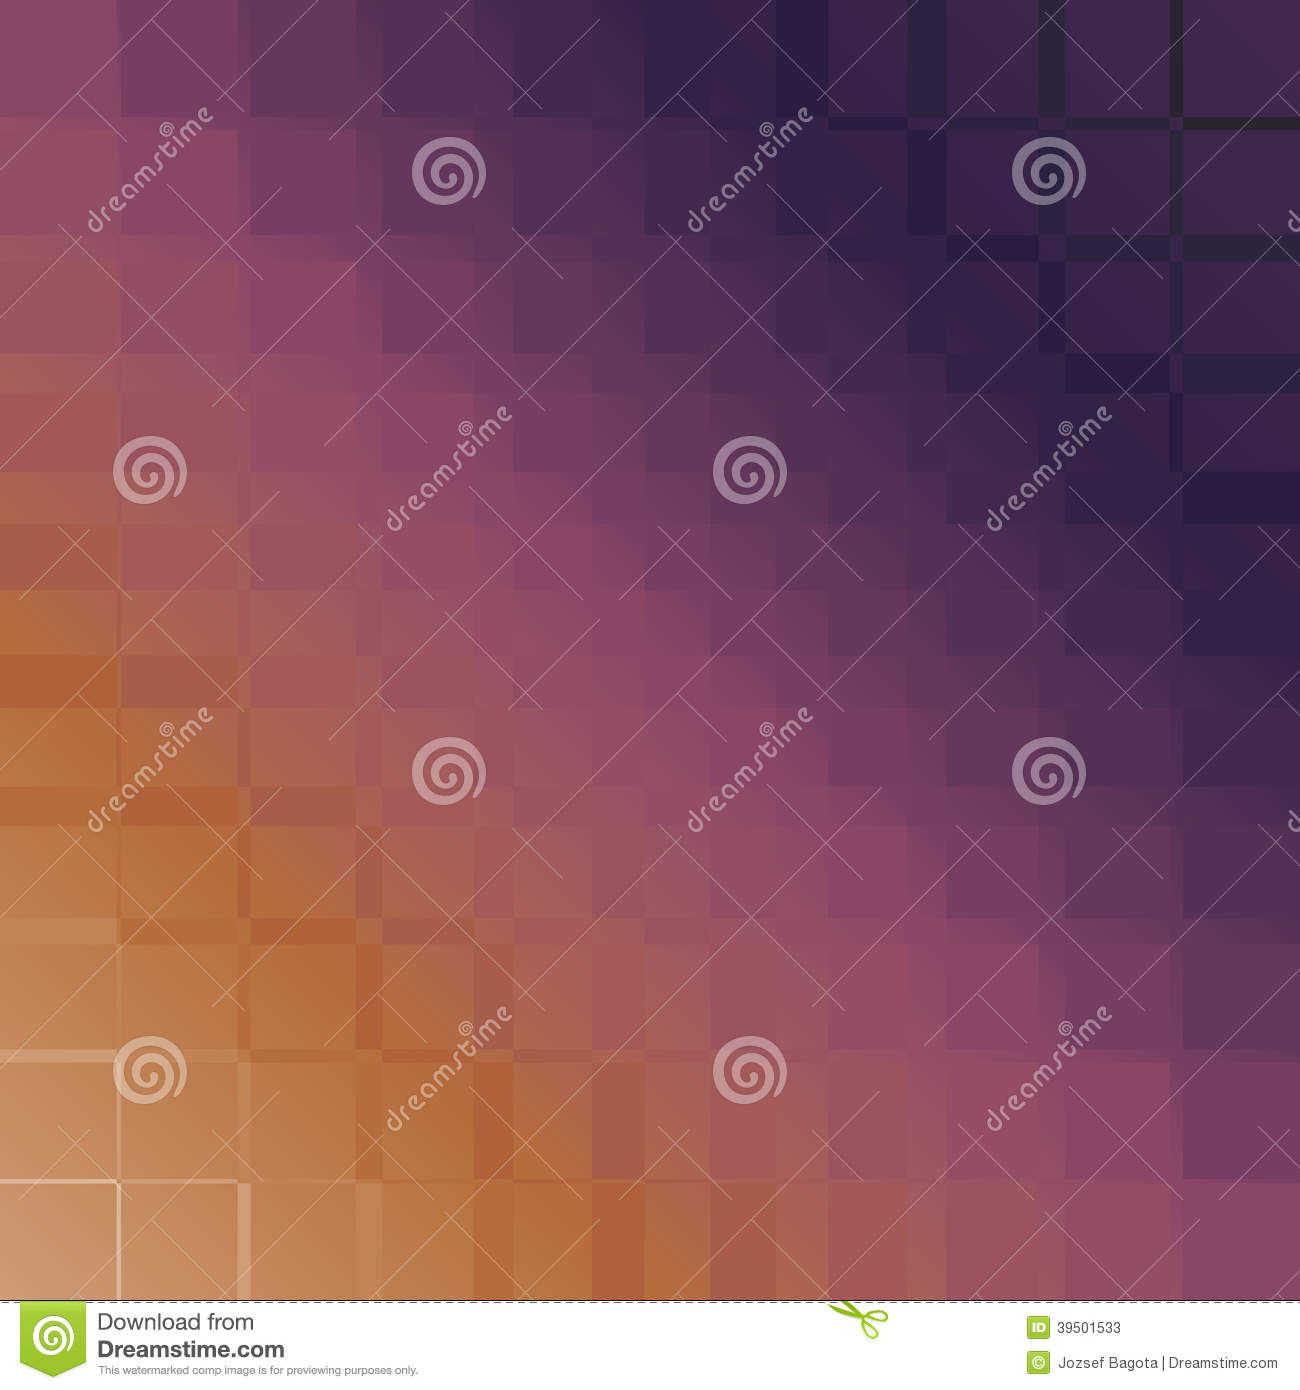 Download Abstract Checkered Background Stock Vector - Illustration of brochure, cover: 39501533